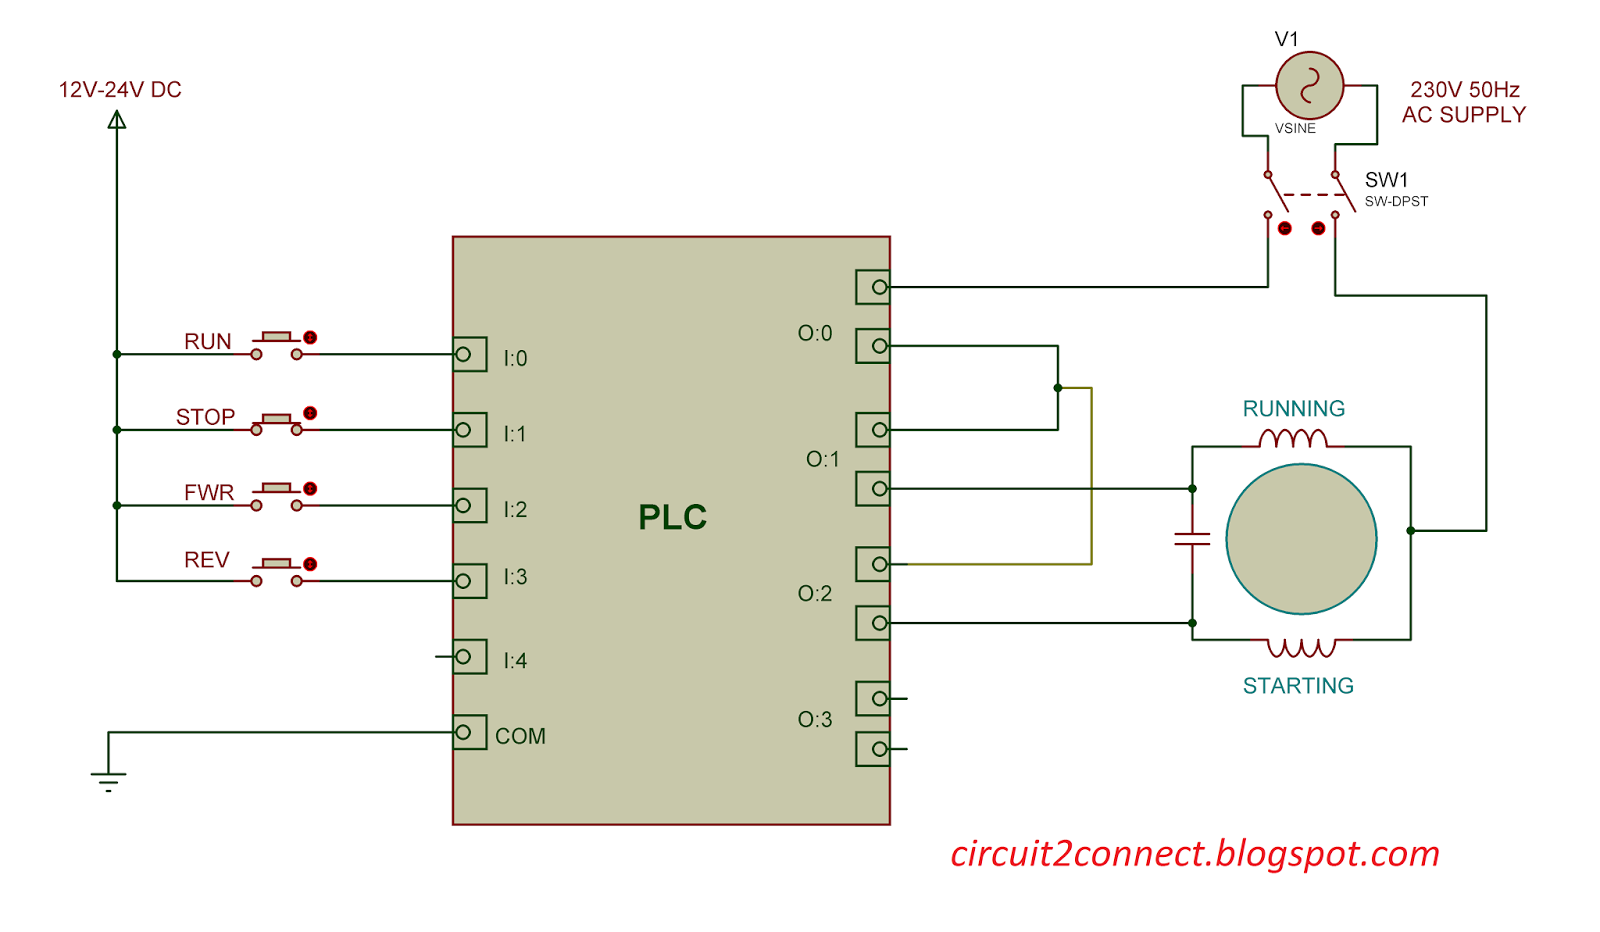 Single Phase Induction Motor Direction Control Using PLC (v3 ...